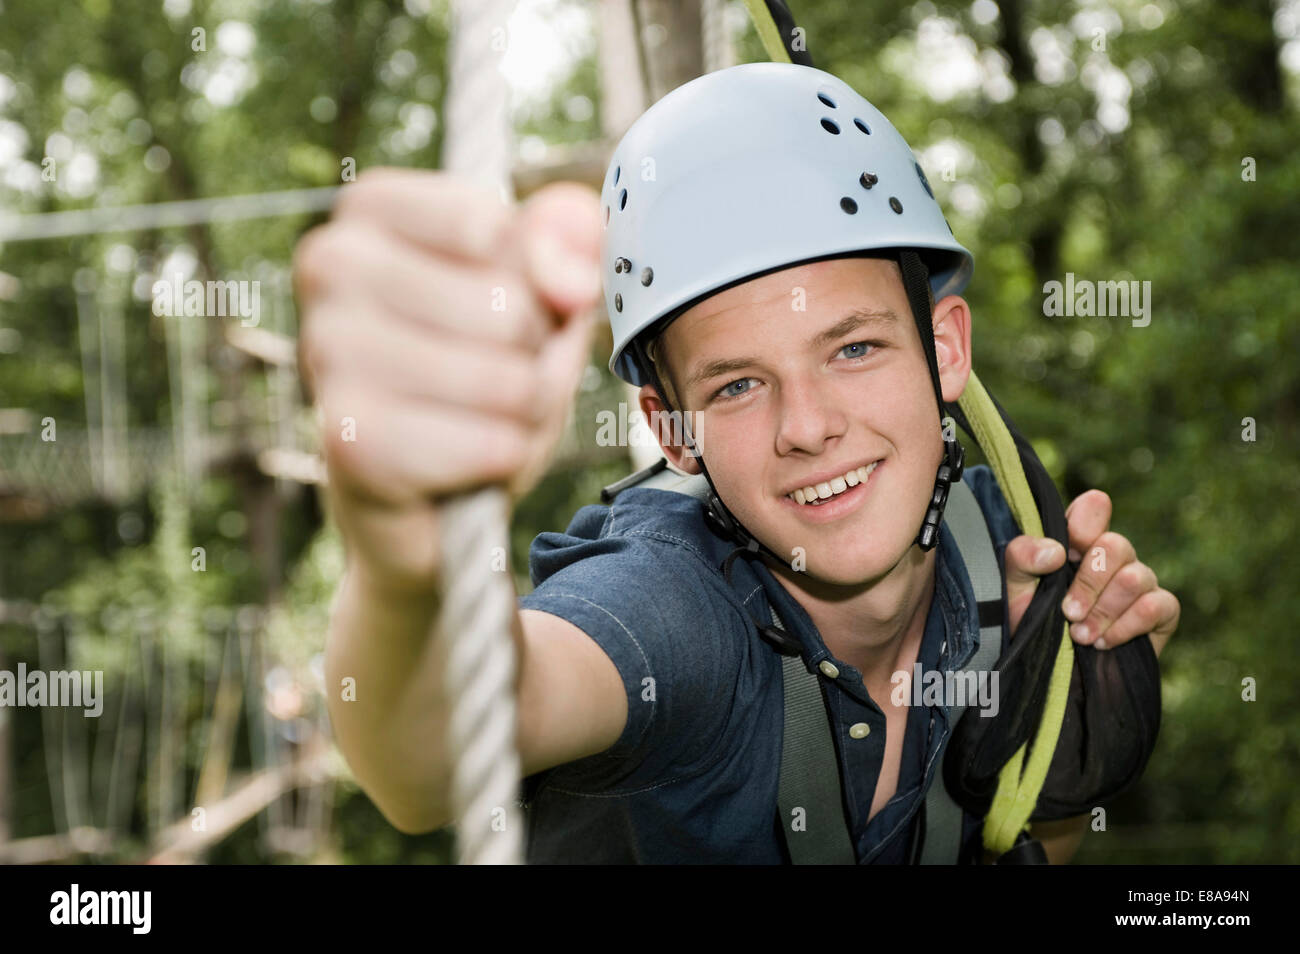 smiling teenager in a climbing crag, close-up - Stock Image